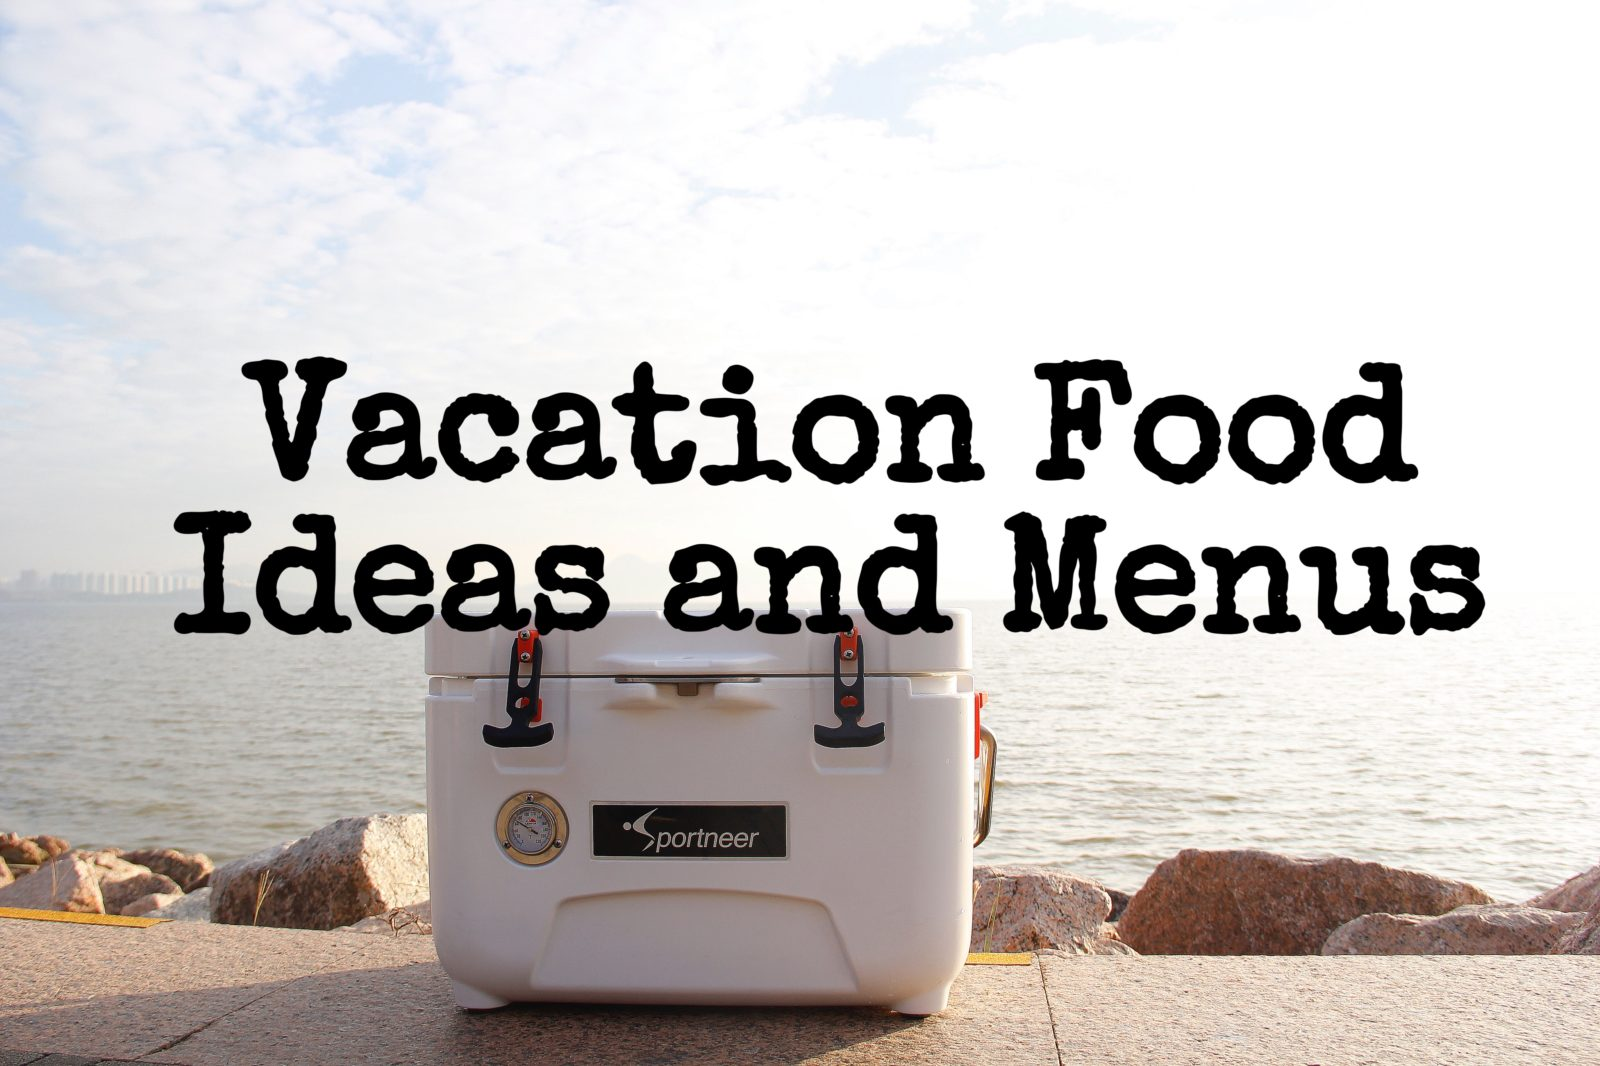 Vacation Food Ideas and Menus